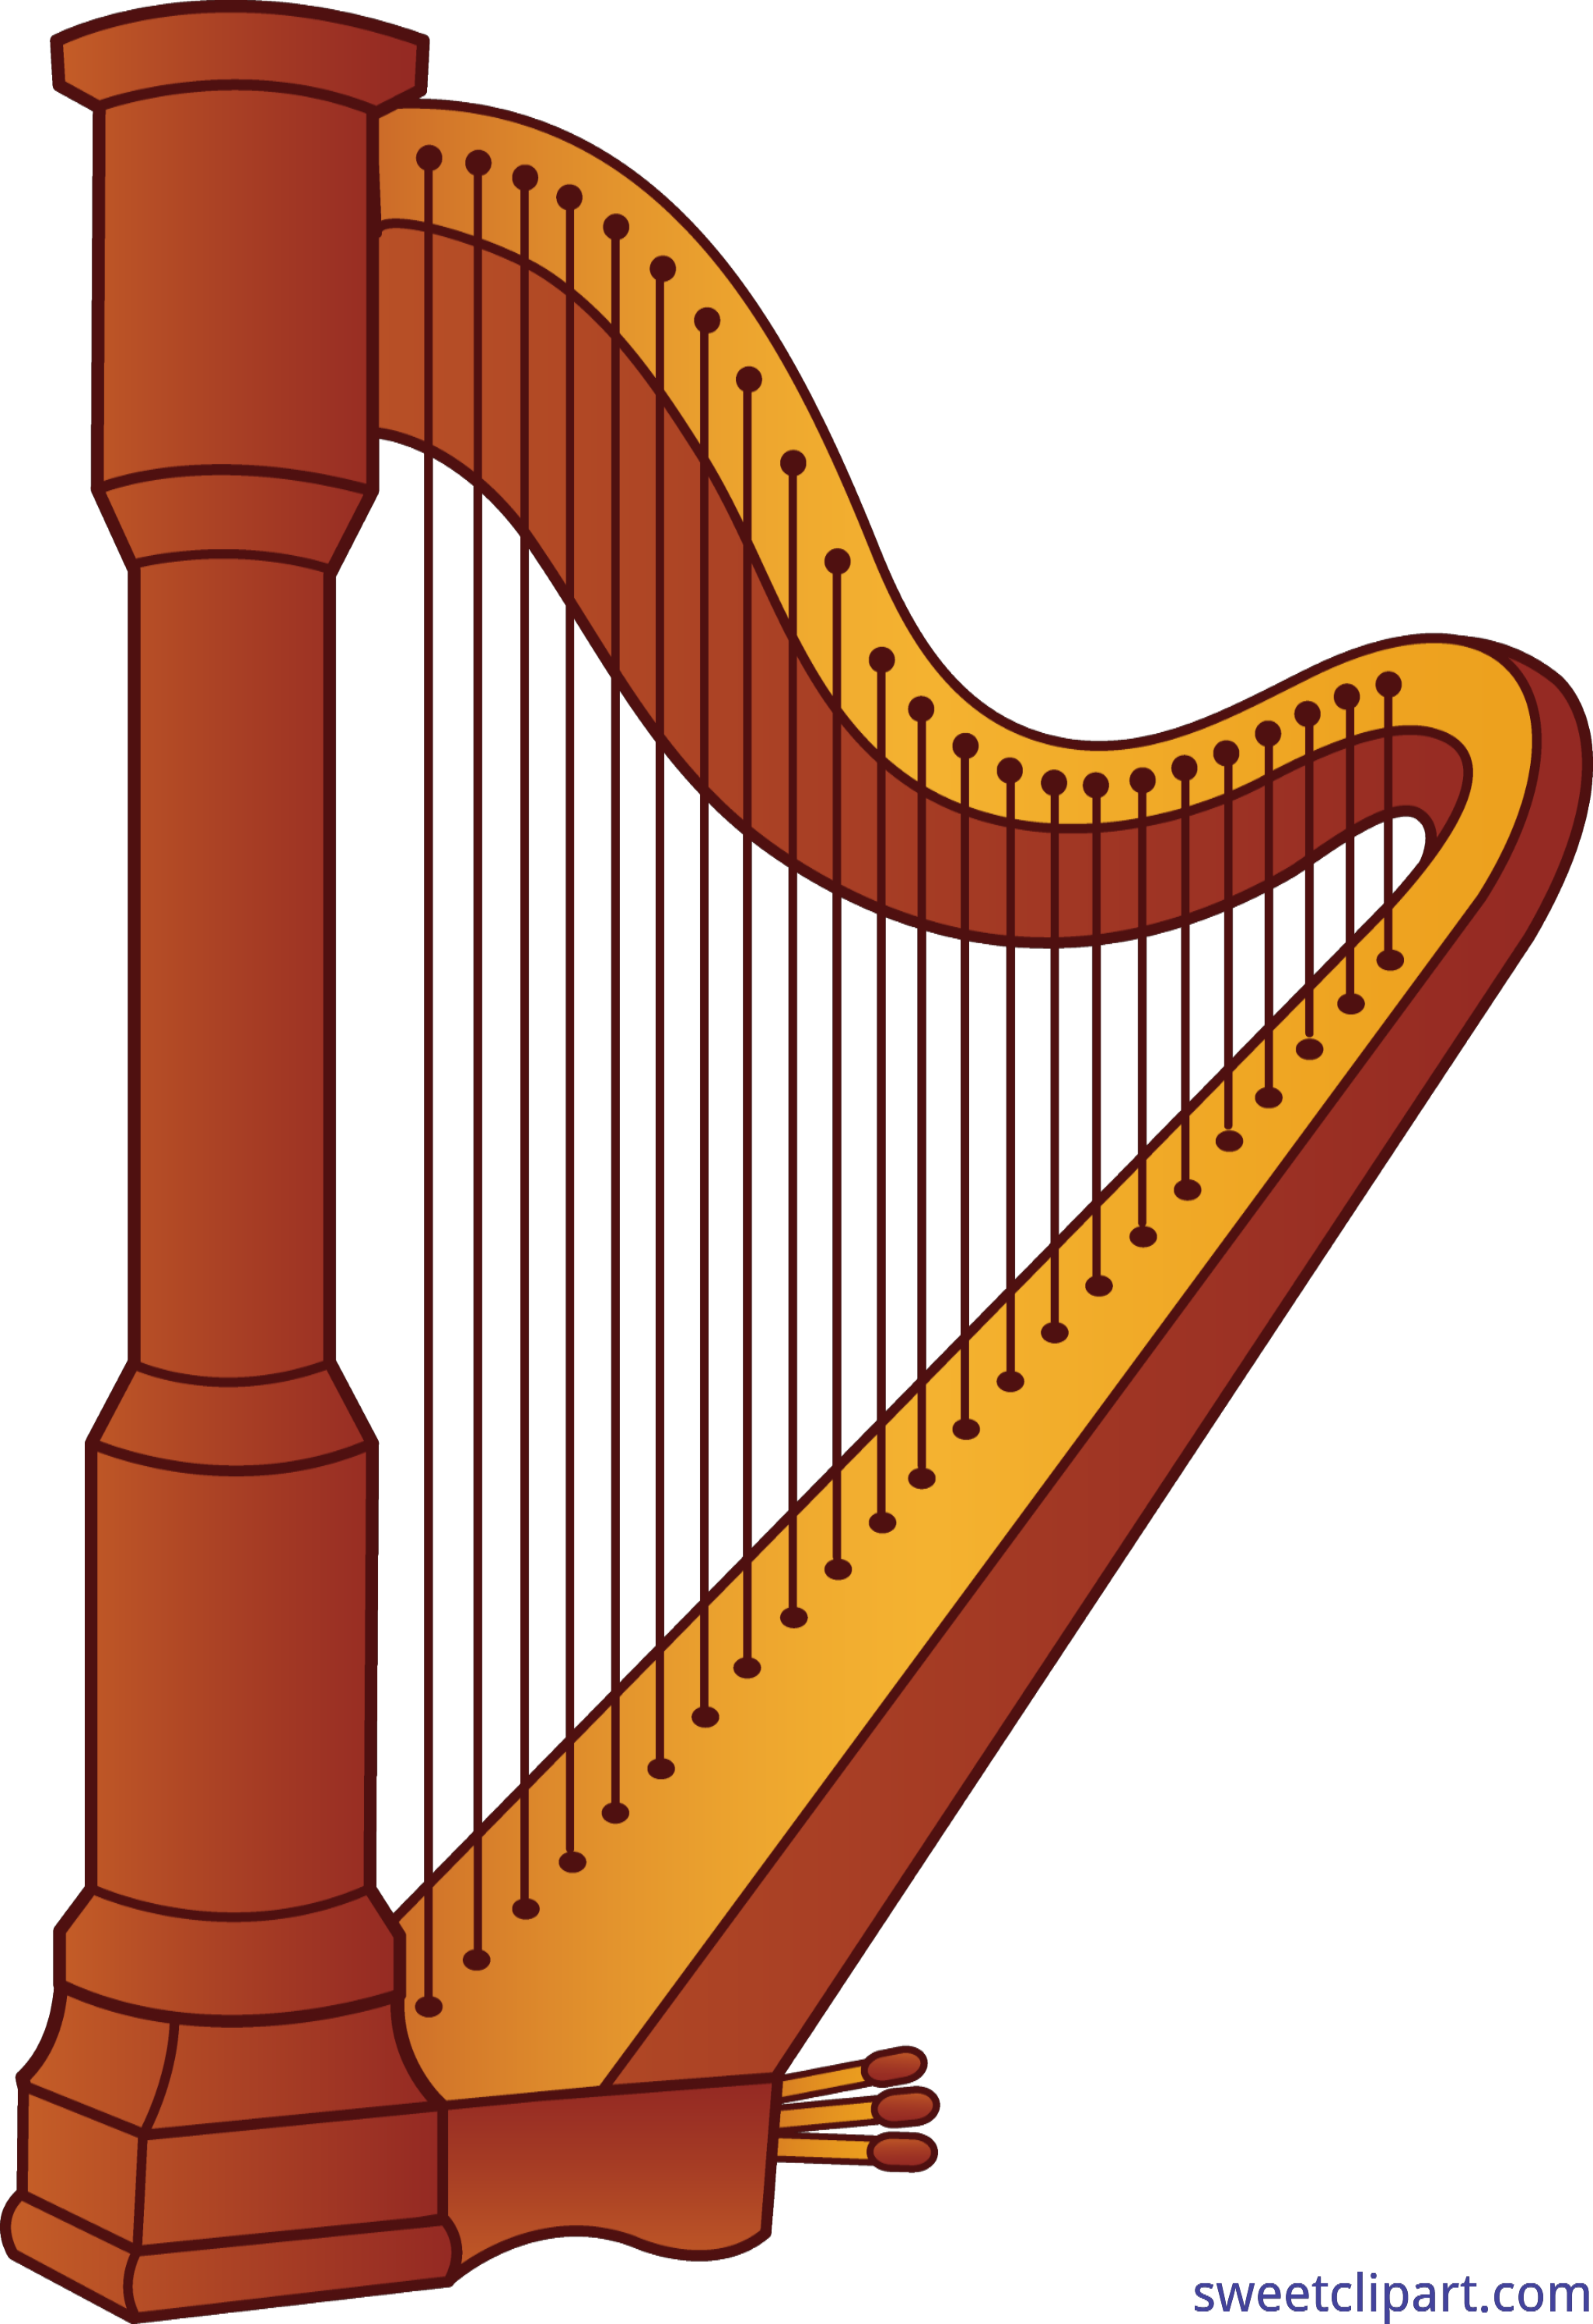 clipart library library Clip art sweet. Harp clipart.